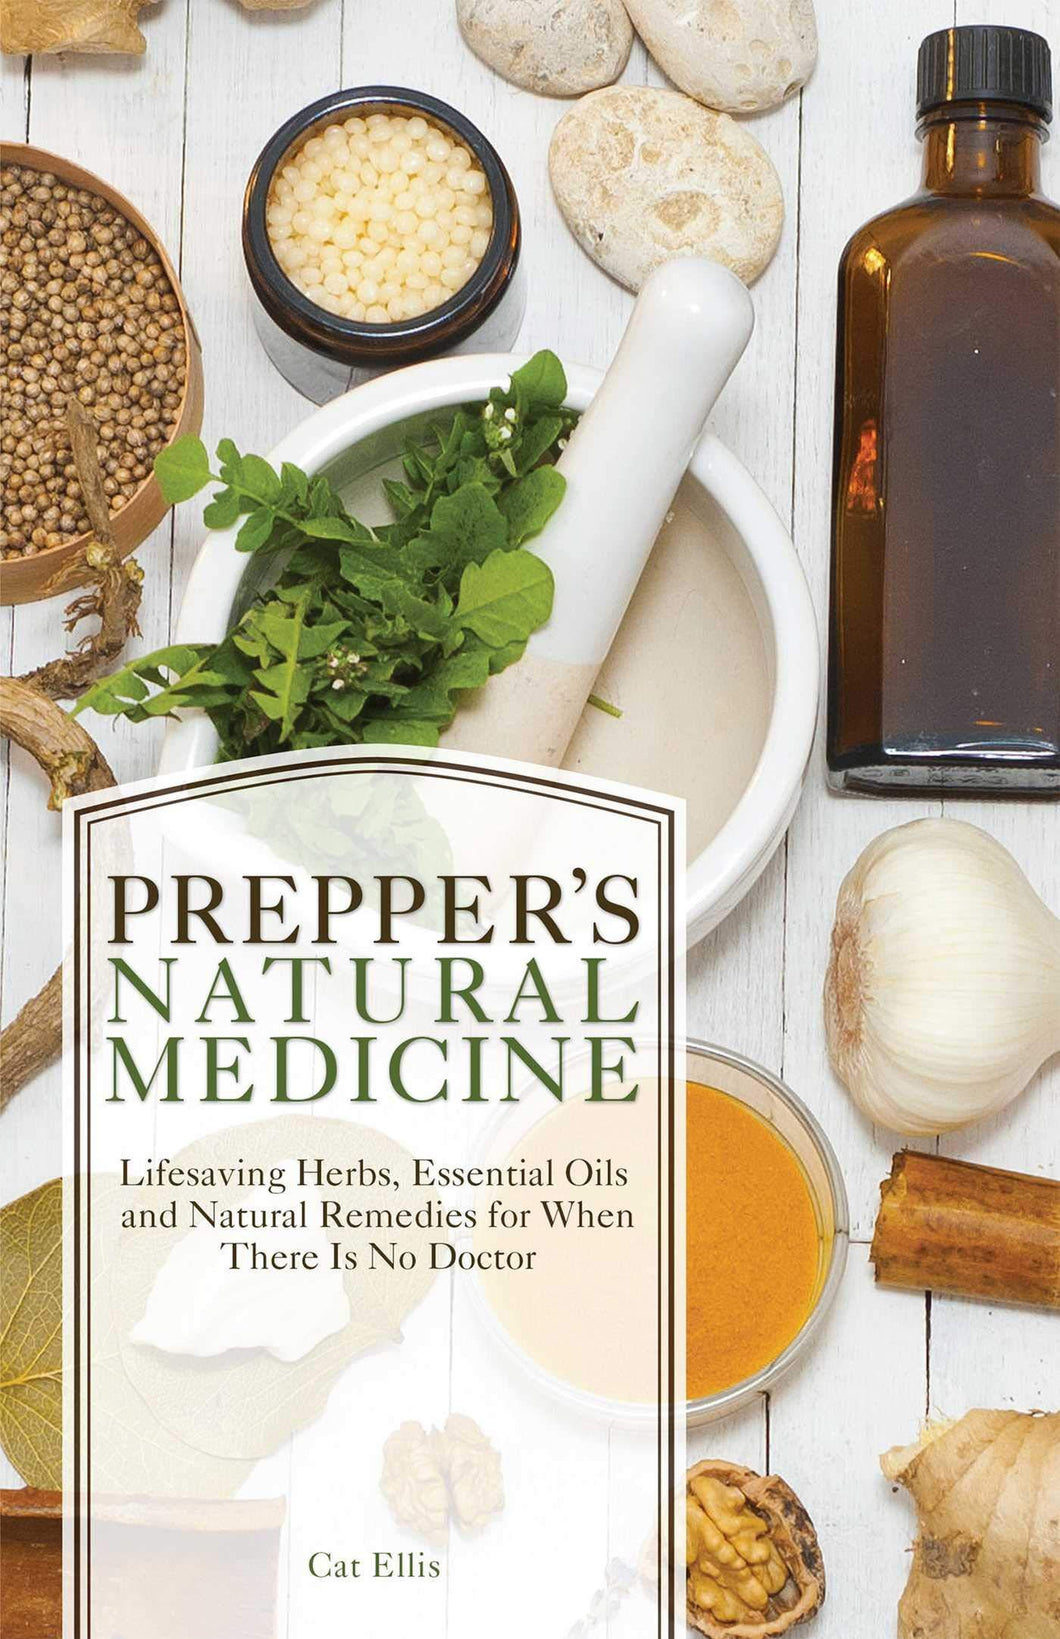 Prepper's Natural Medicine: Life-Saving Herbs, Essential Oils and Natural Remedies for When There is No Doctor - Tolerant Planet